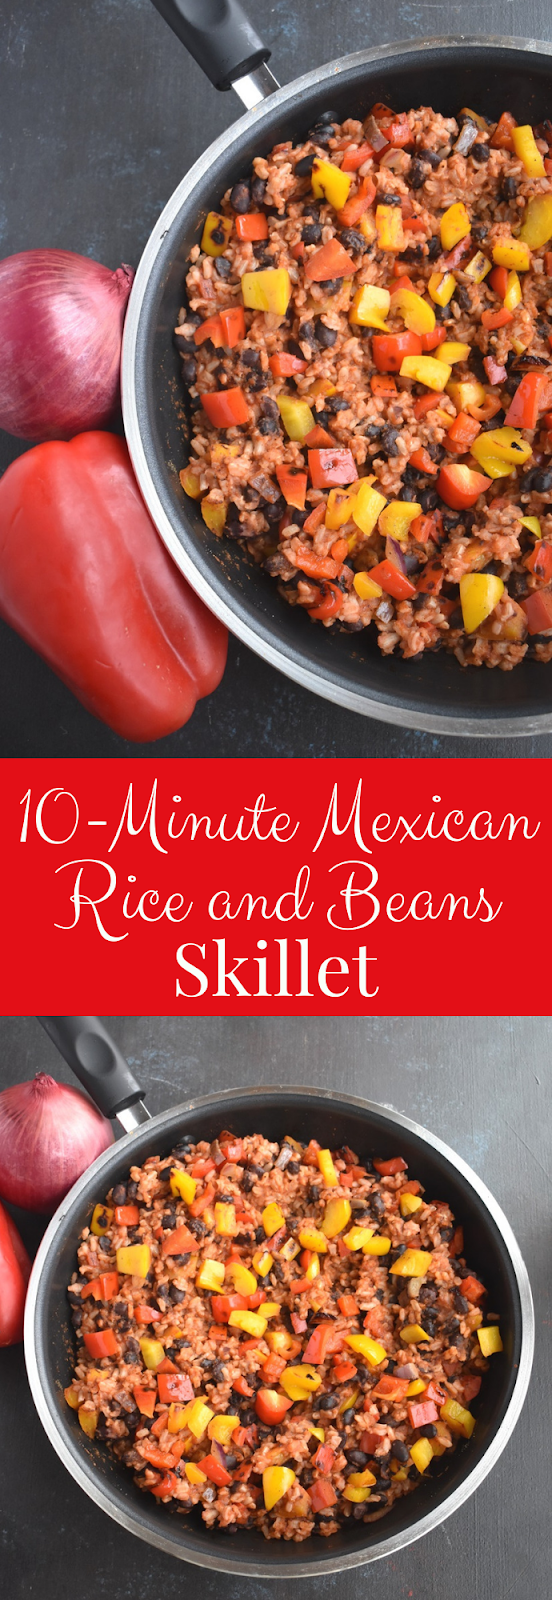 10-Minute Mexican Rice and Beans Skillet recipe